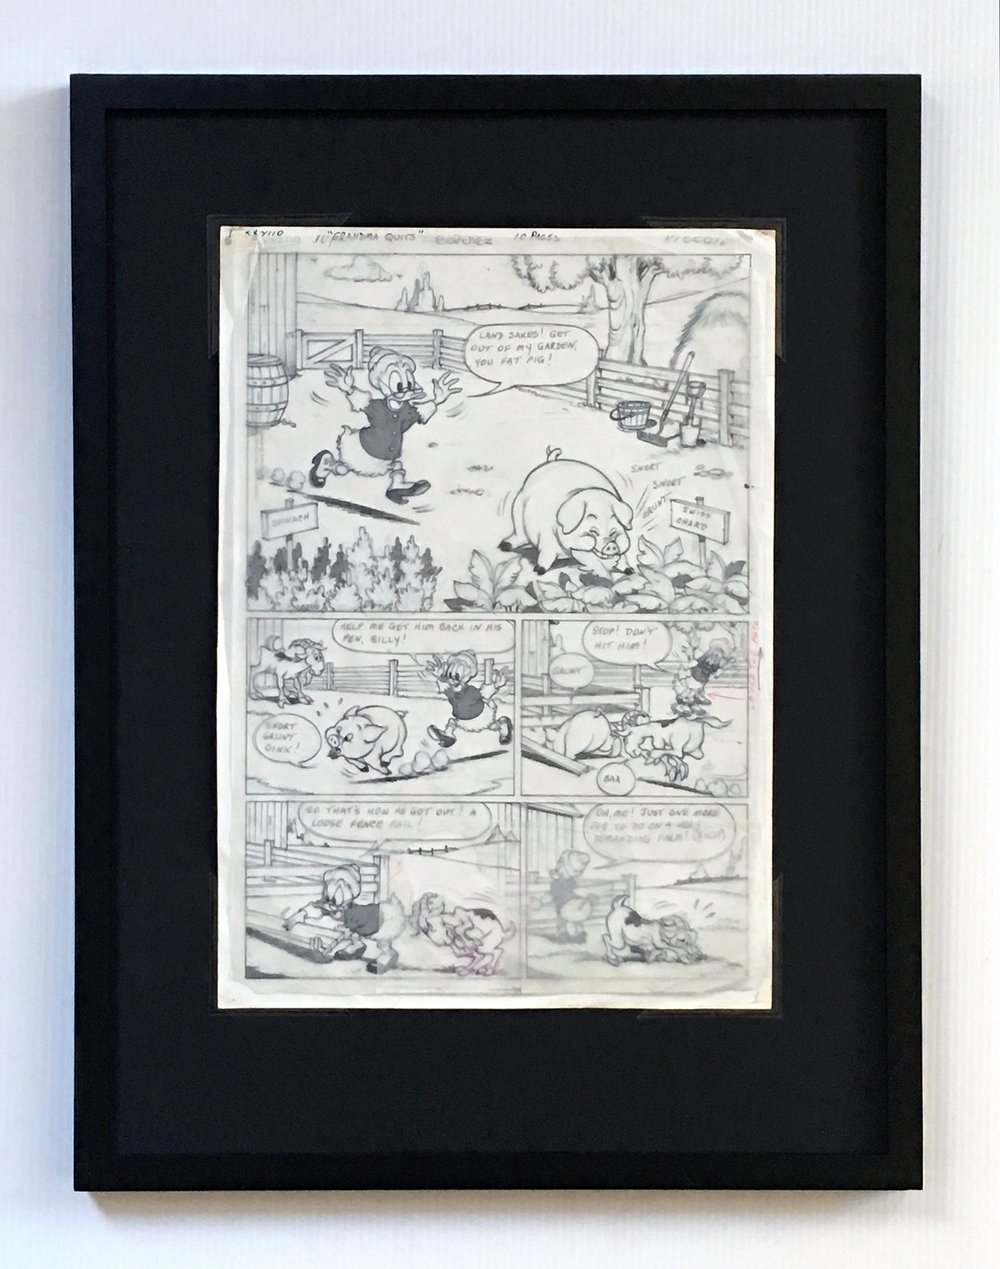 Penciled Layer Displayed above Inked Layer - Framing Materials Sold Separately